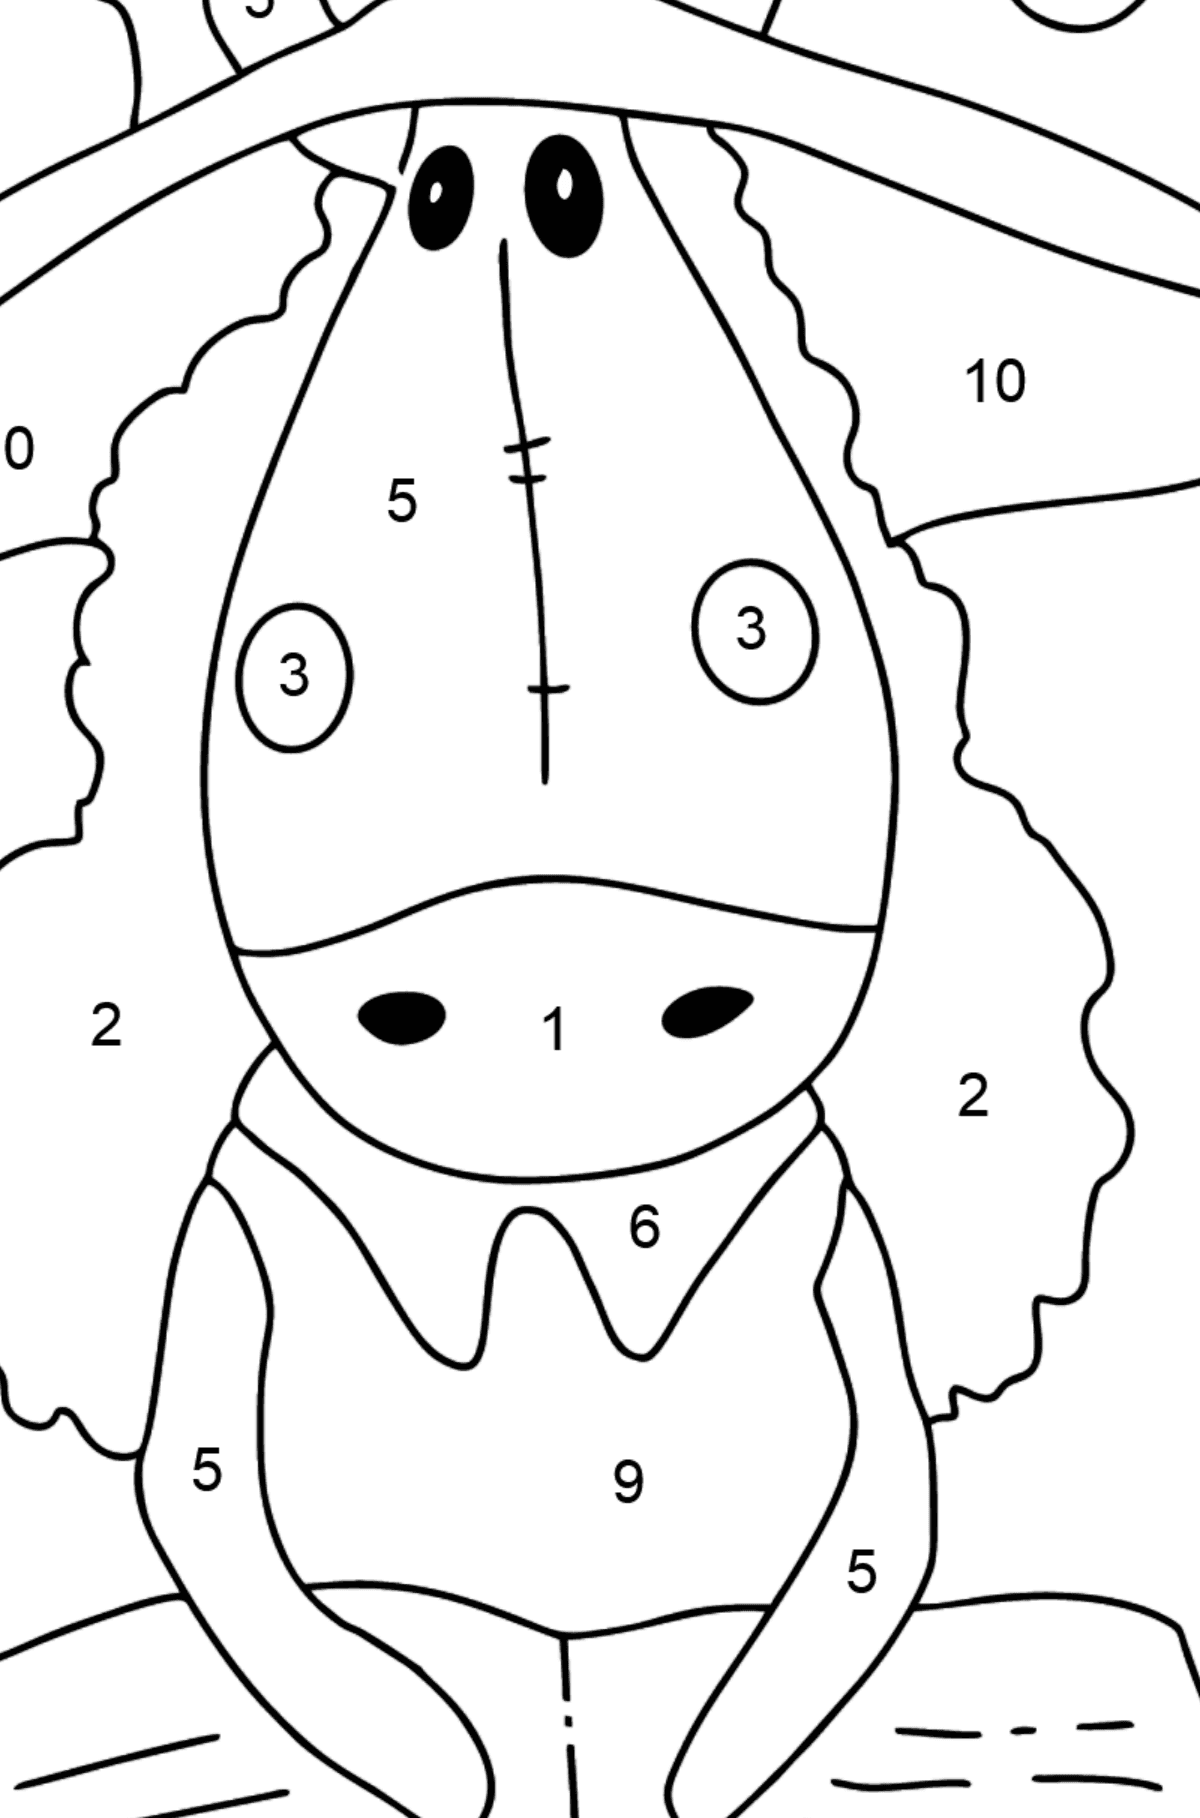 Coloring page a horse with book - Coloring by Numbers for Kids